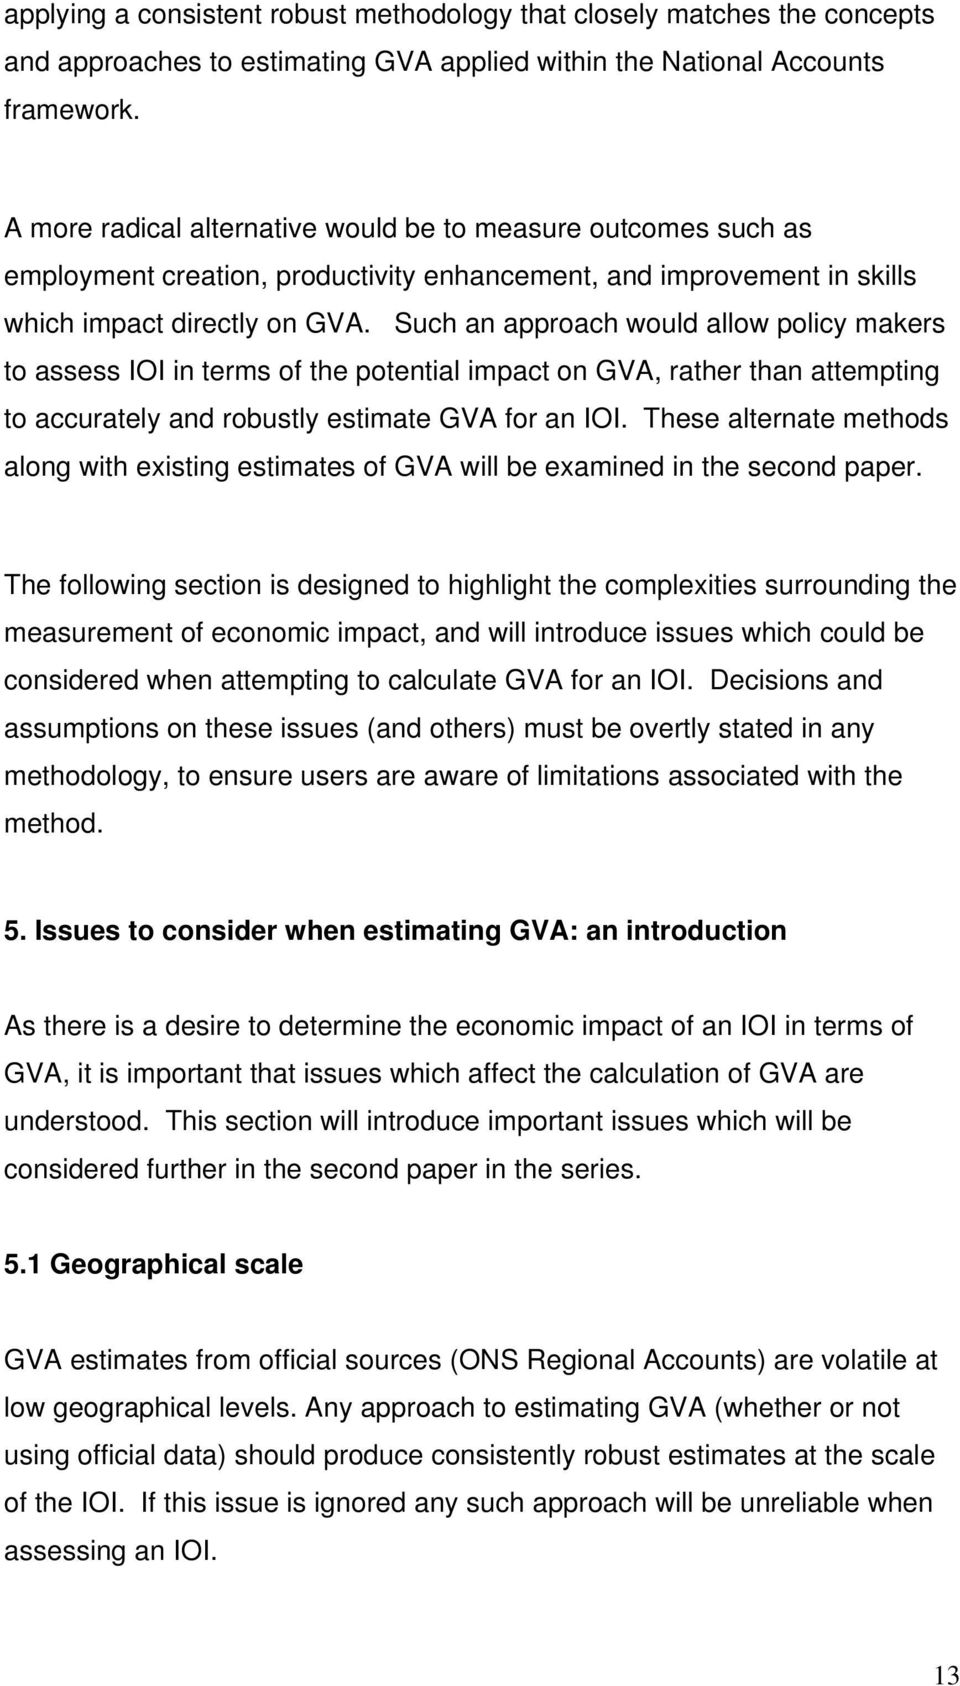 Such an approach would allow policy makers to assess IOI in terms of the potential impact on GVA, rather than attempting to accurately and robustly estimate GVA for an IOI.